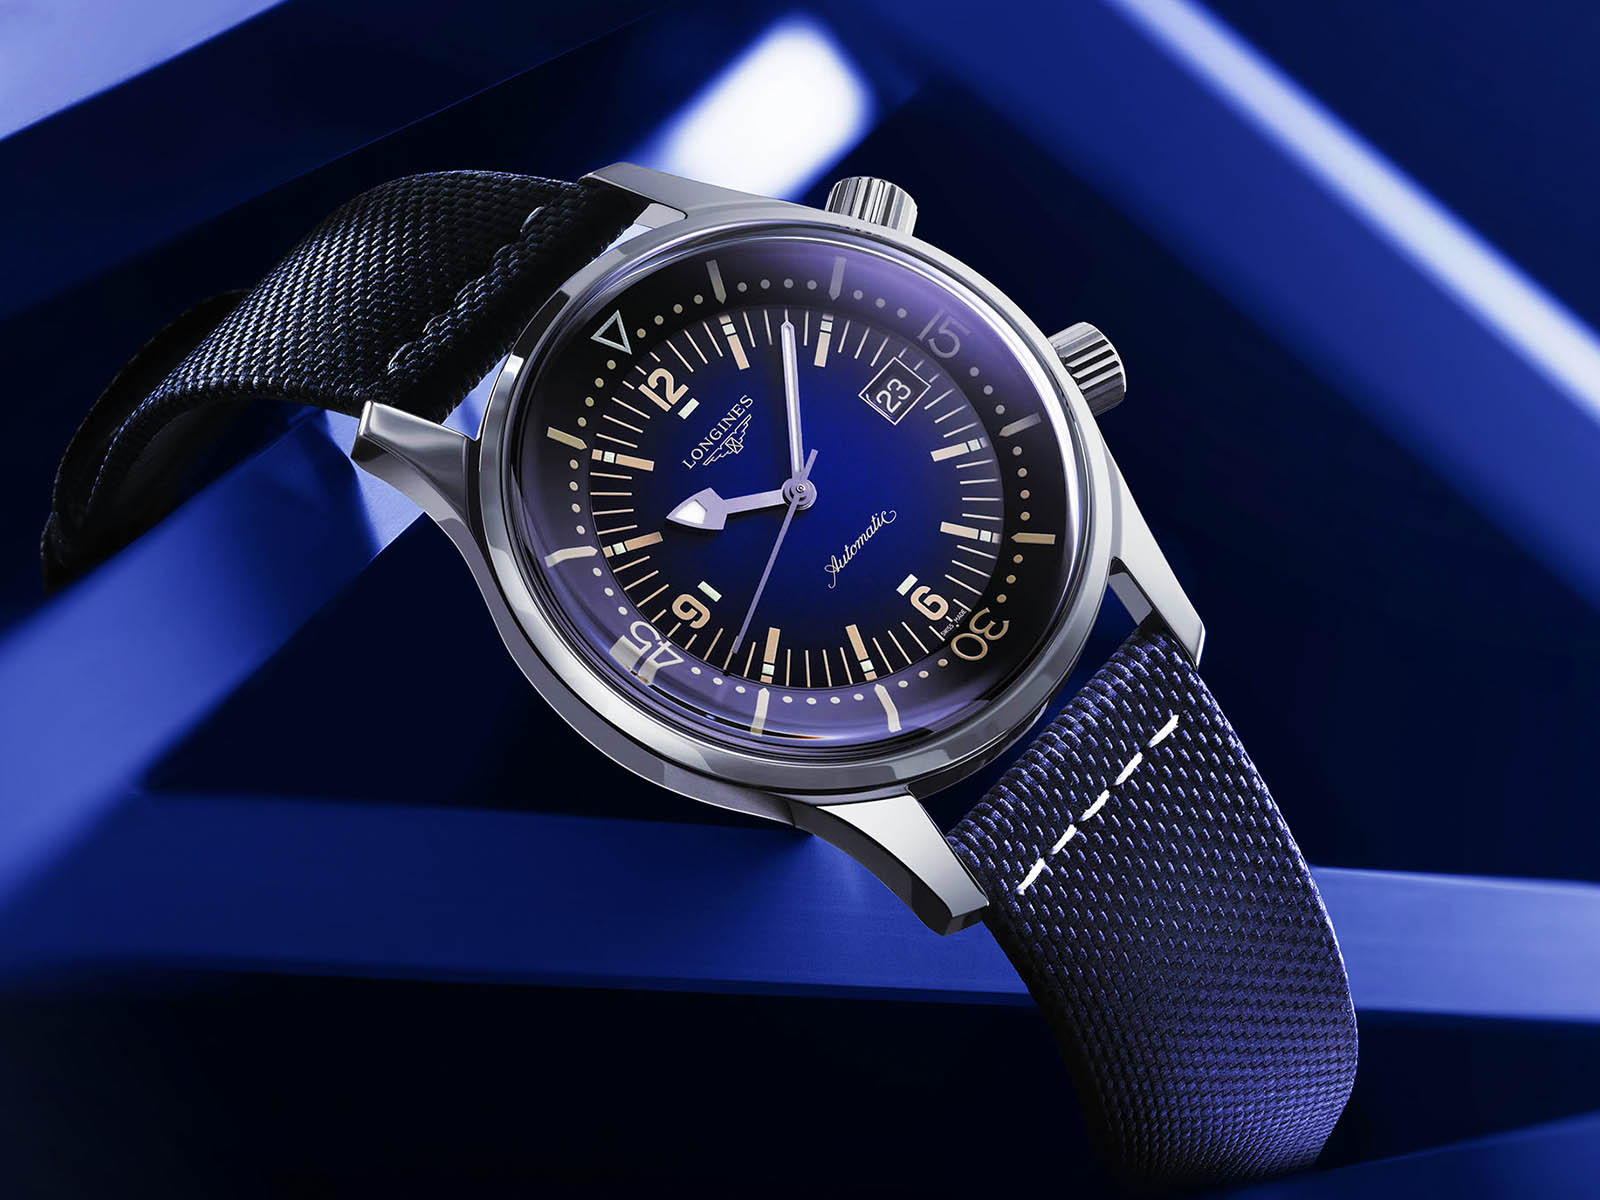 l3-774-4-90-2-longines-legend-diver-new-dial-colors-1.jpg